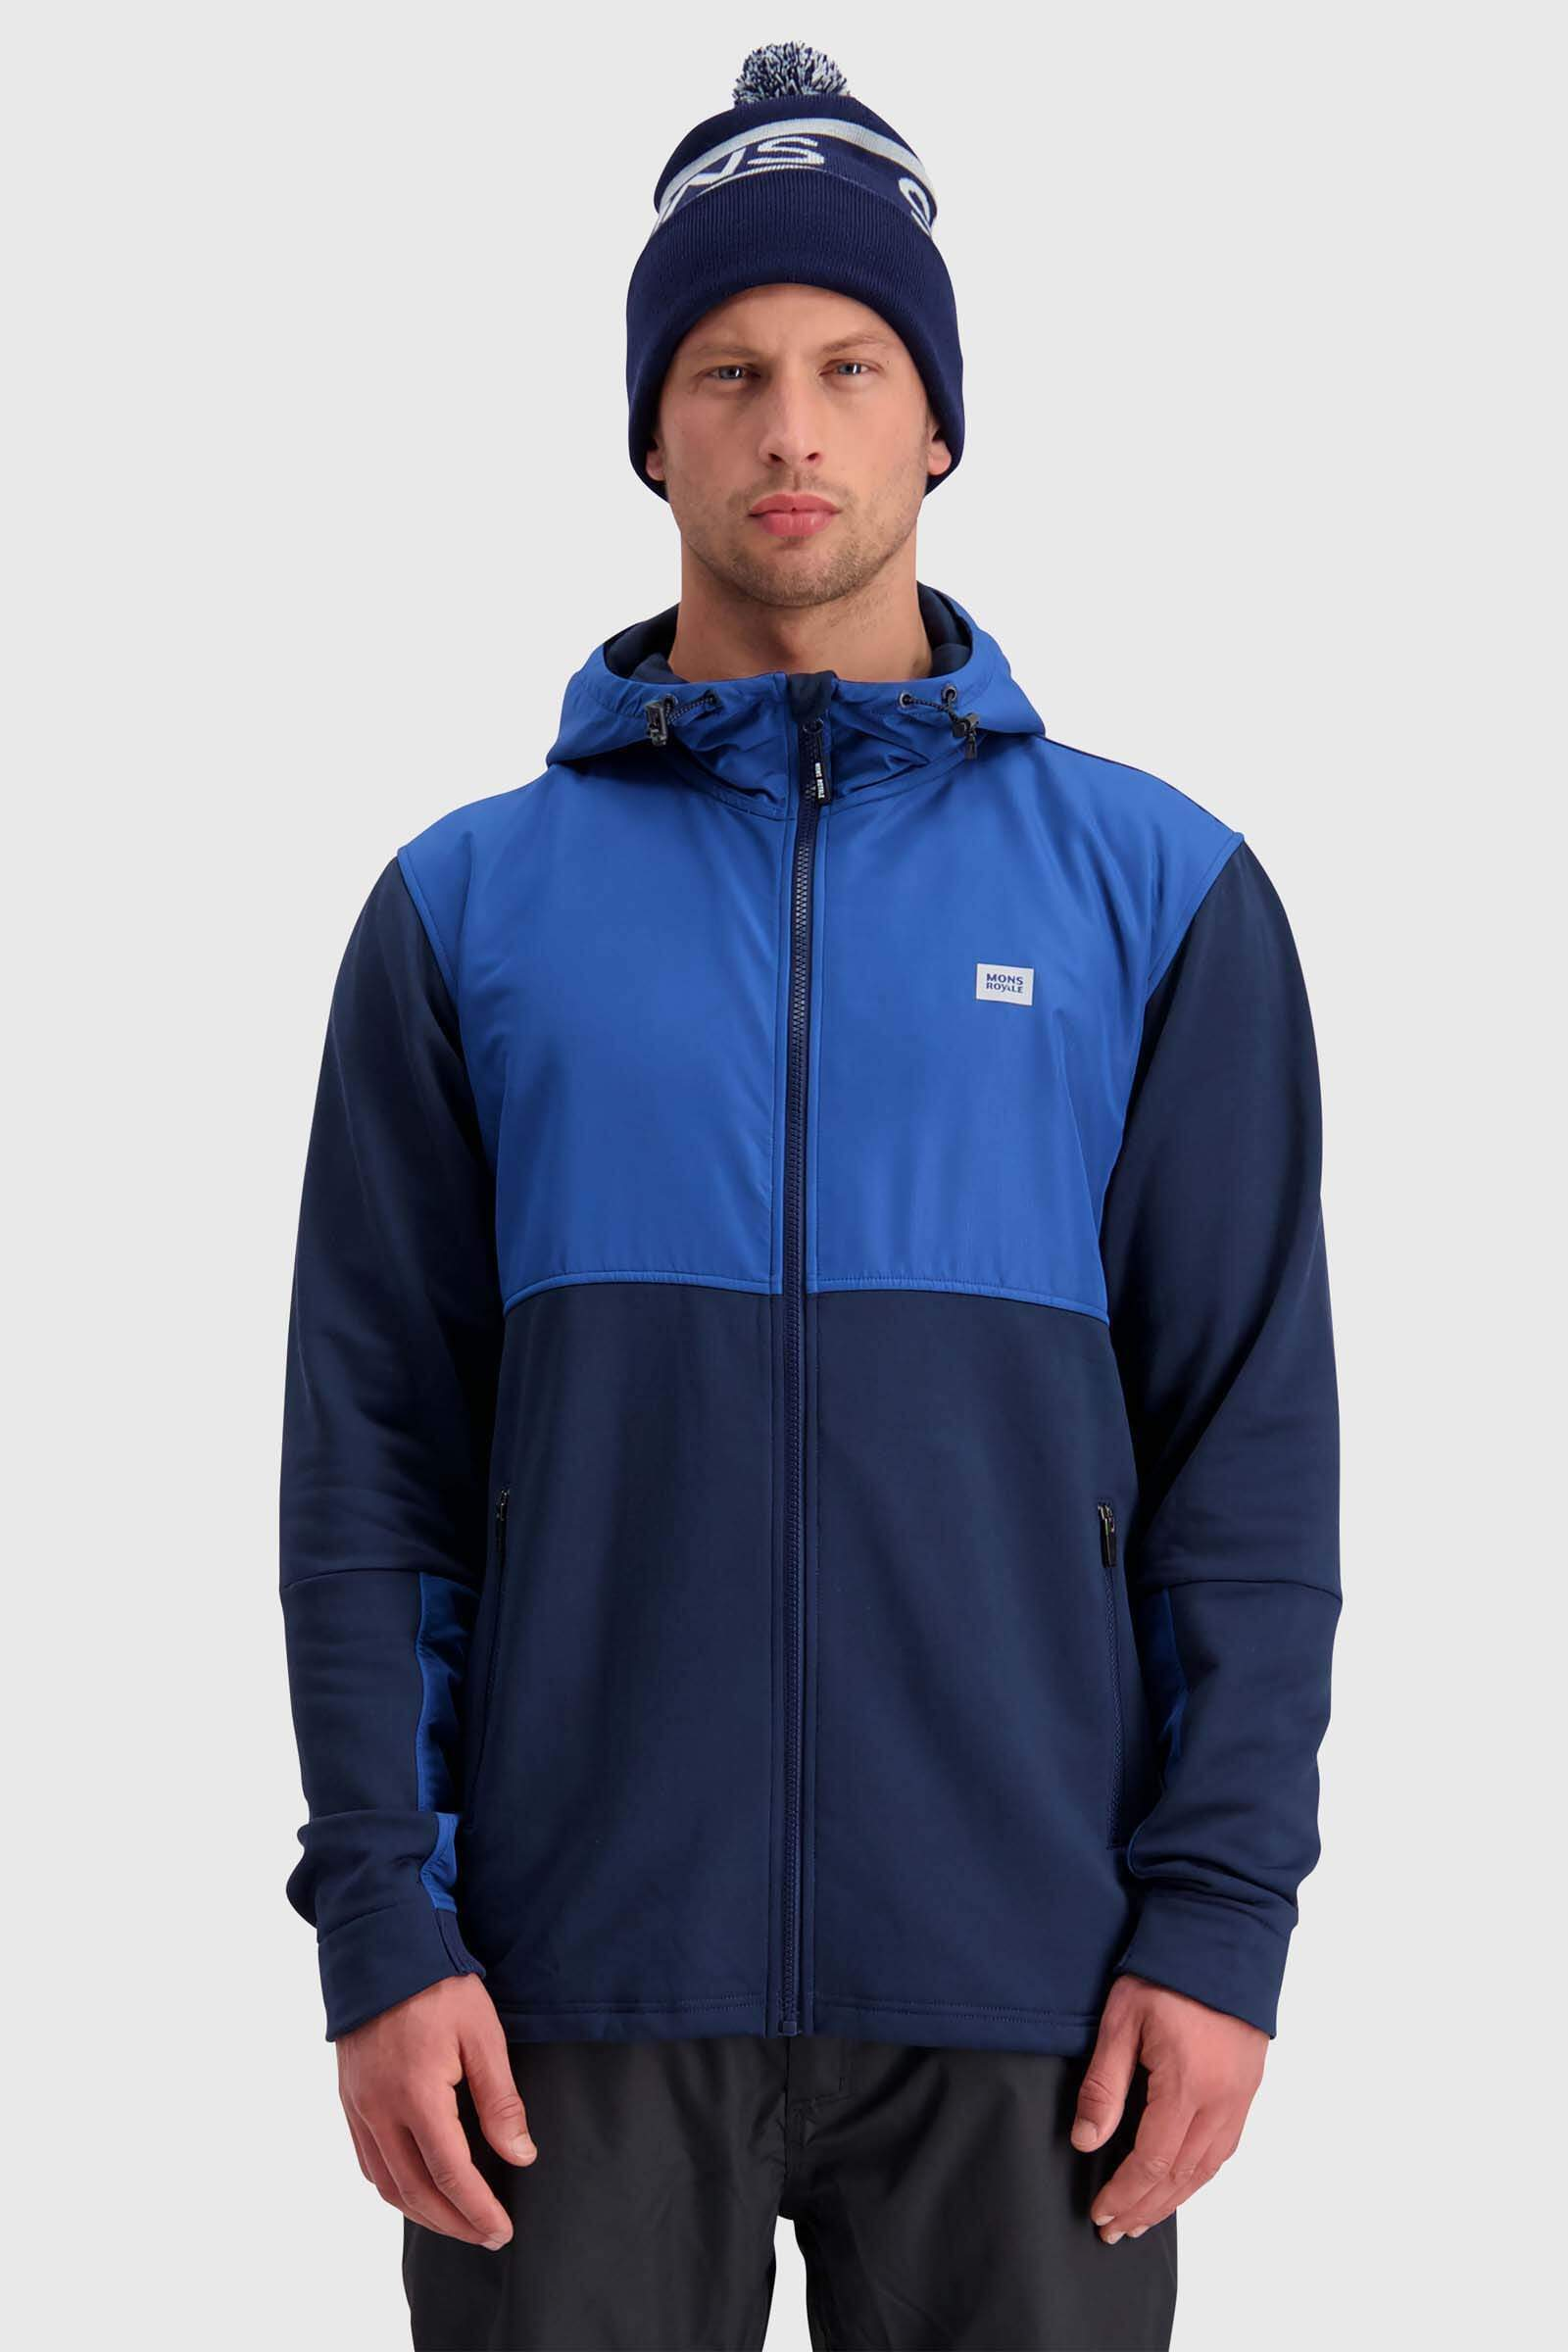 Decade Tech Mid Hoody - Navy / Deep Ocean